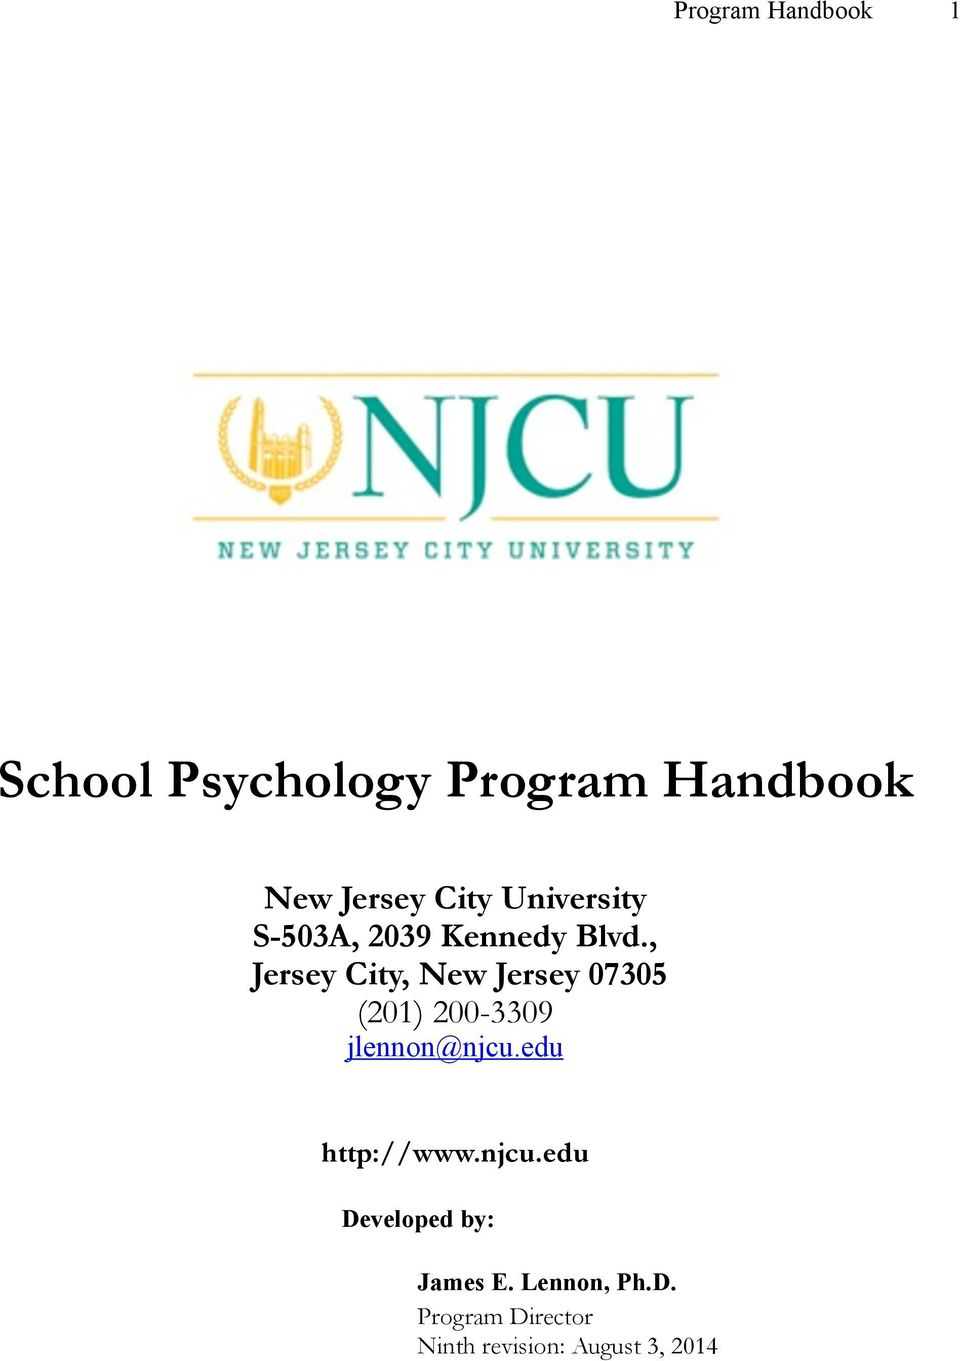 , Jersey City, New Jersey 07305 (201) 200-3309 jlennon@njcu.